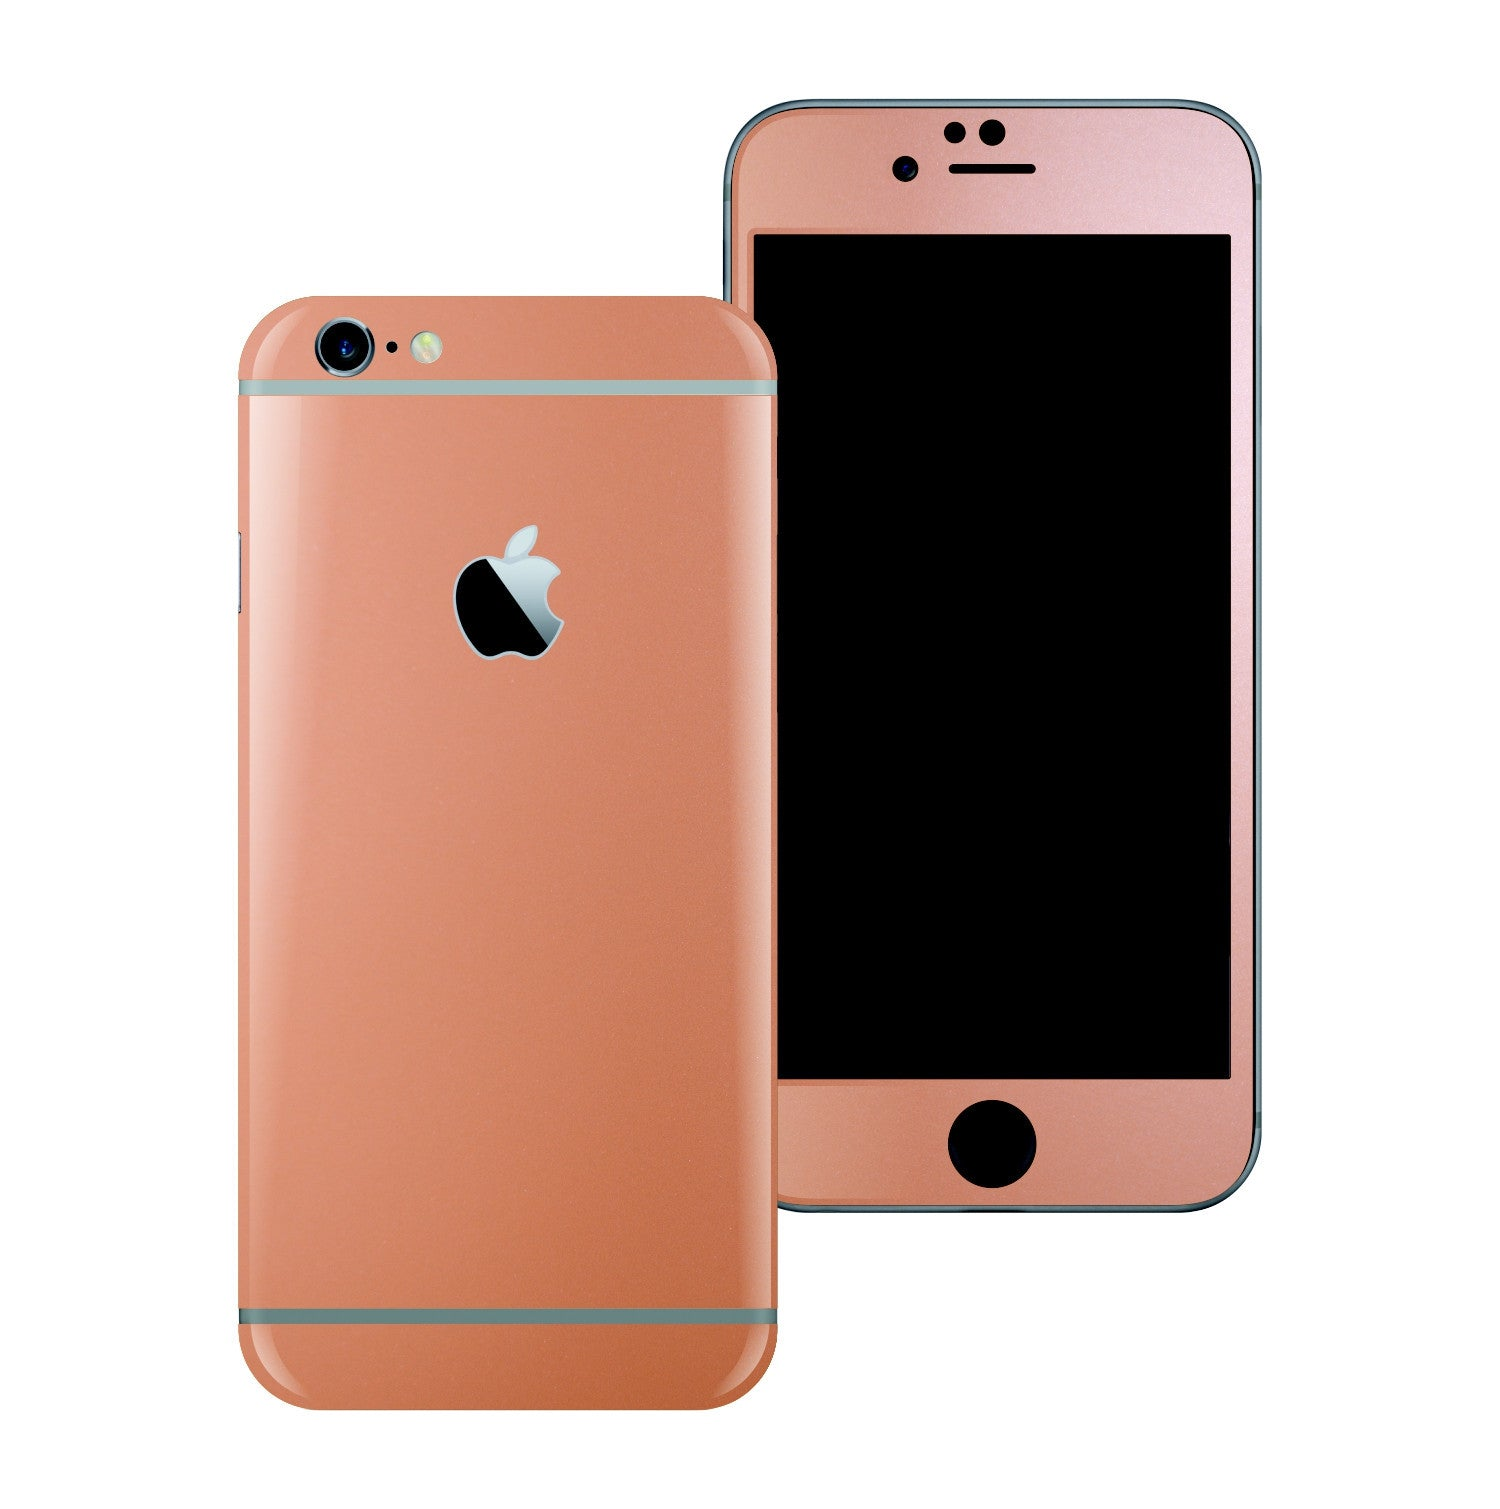 iPhone 6 Plus ROSE GOLD Matt Metallic Skin/Wrap/Decal – EasySkinz.com